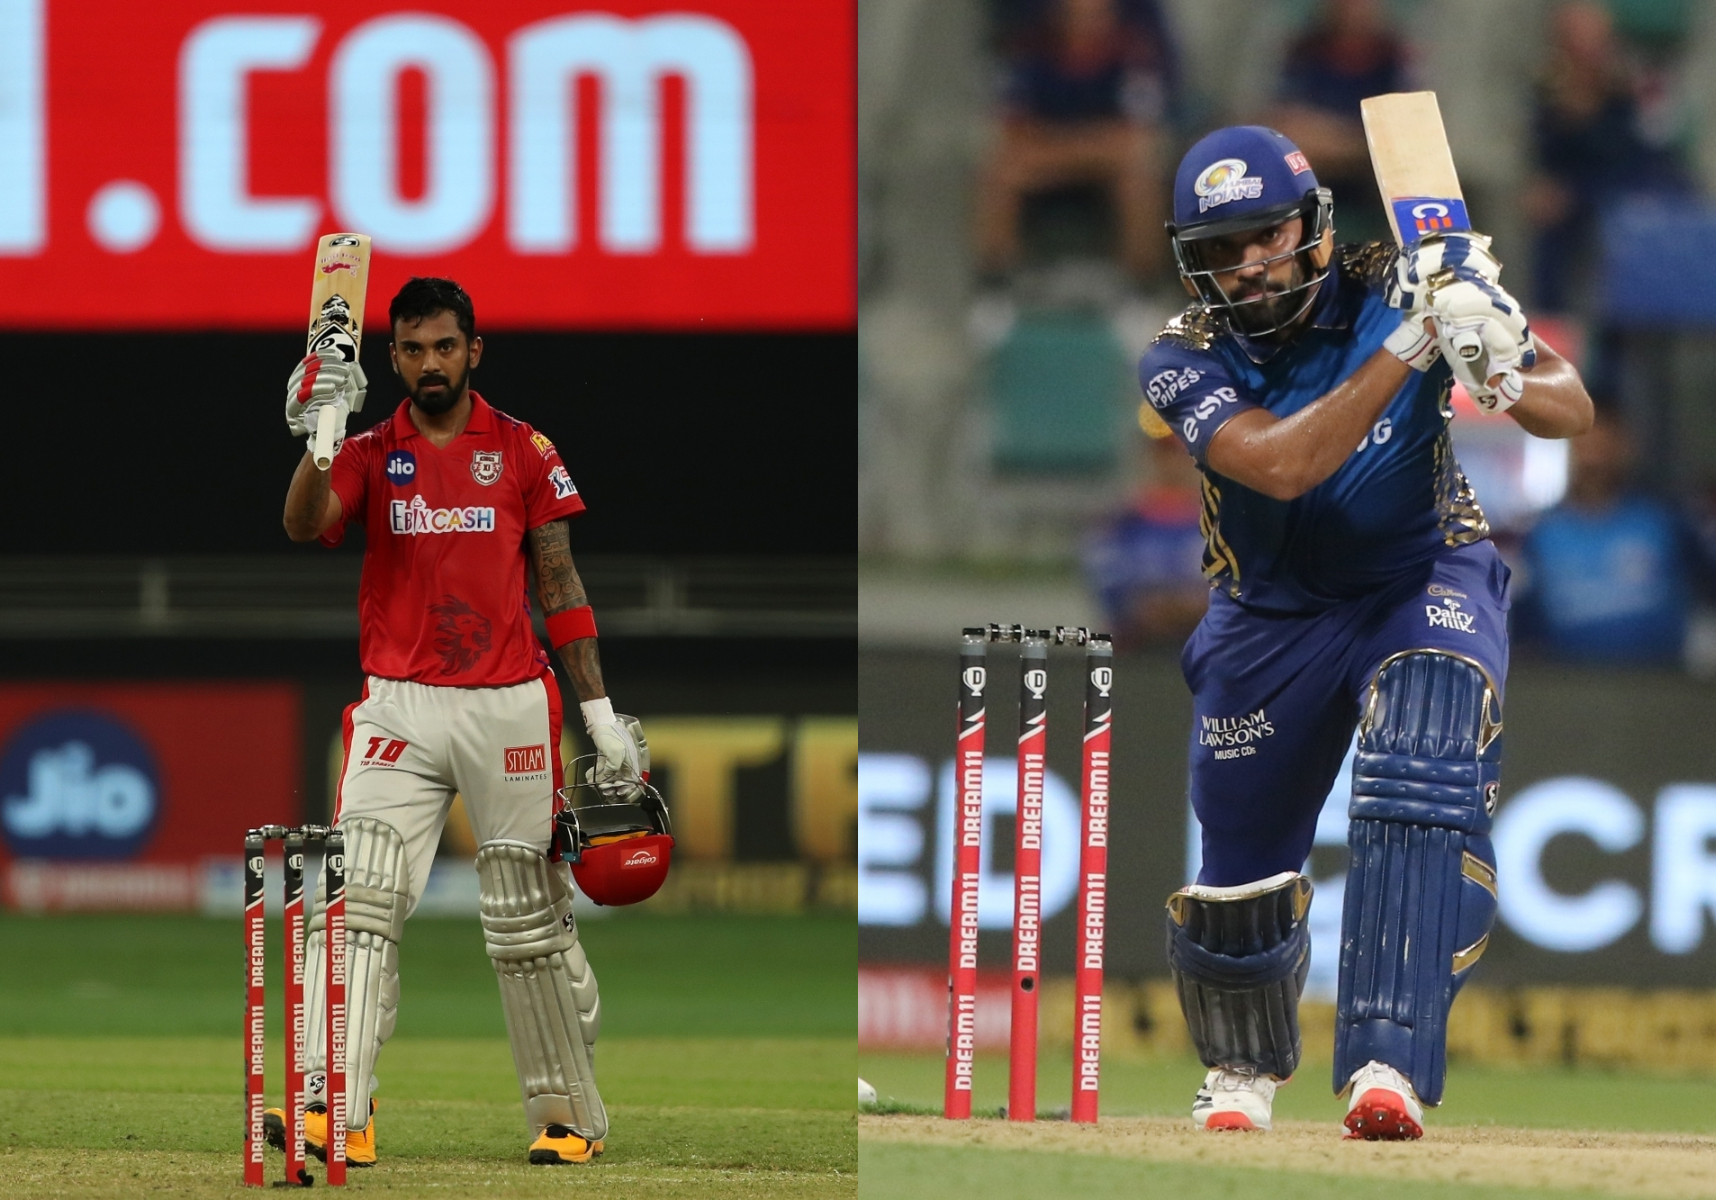 Both KXIP and MI have won one game in IPL 2020 so far | IANS